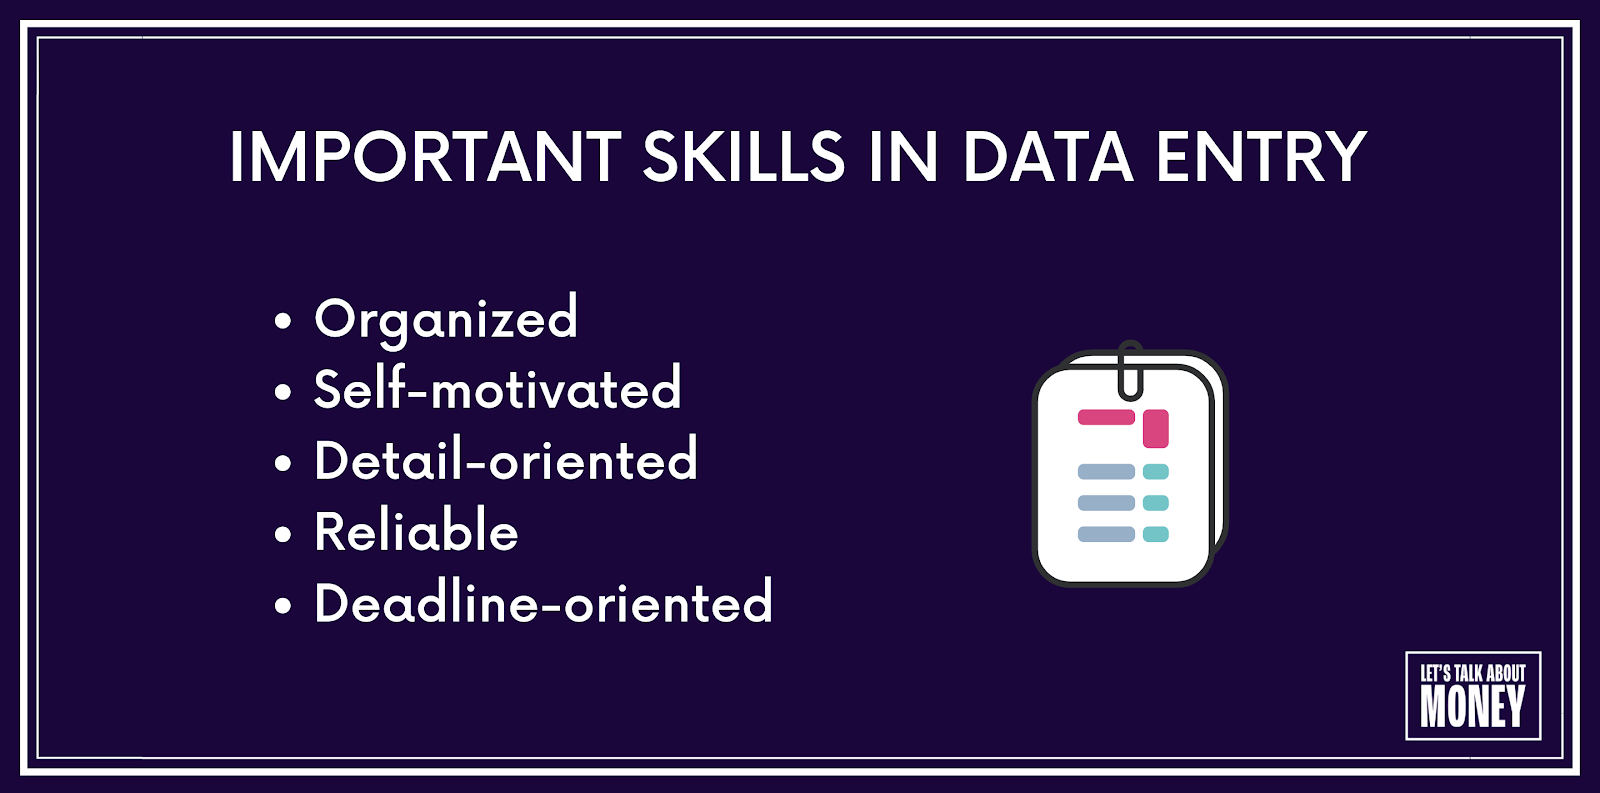 data entry job requirements and skills